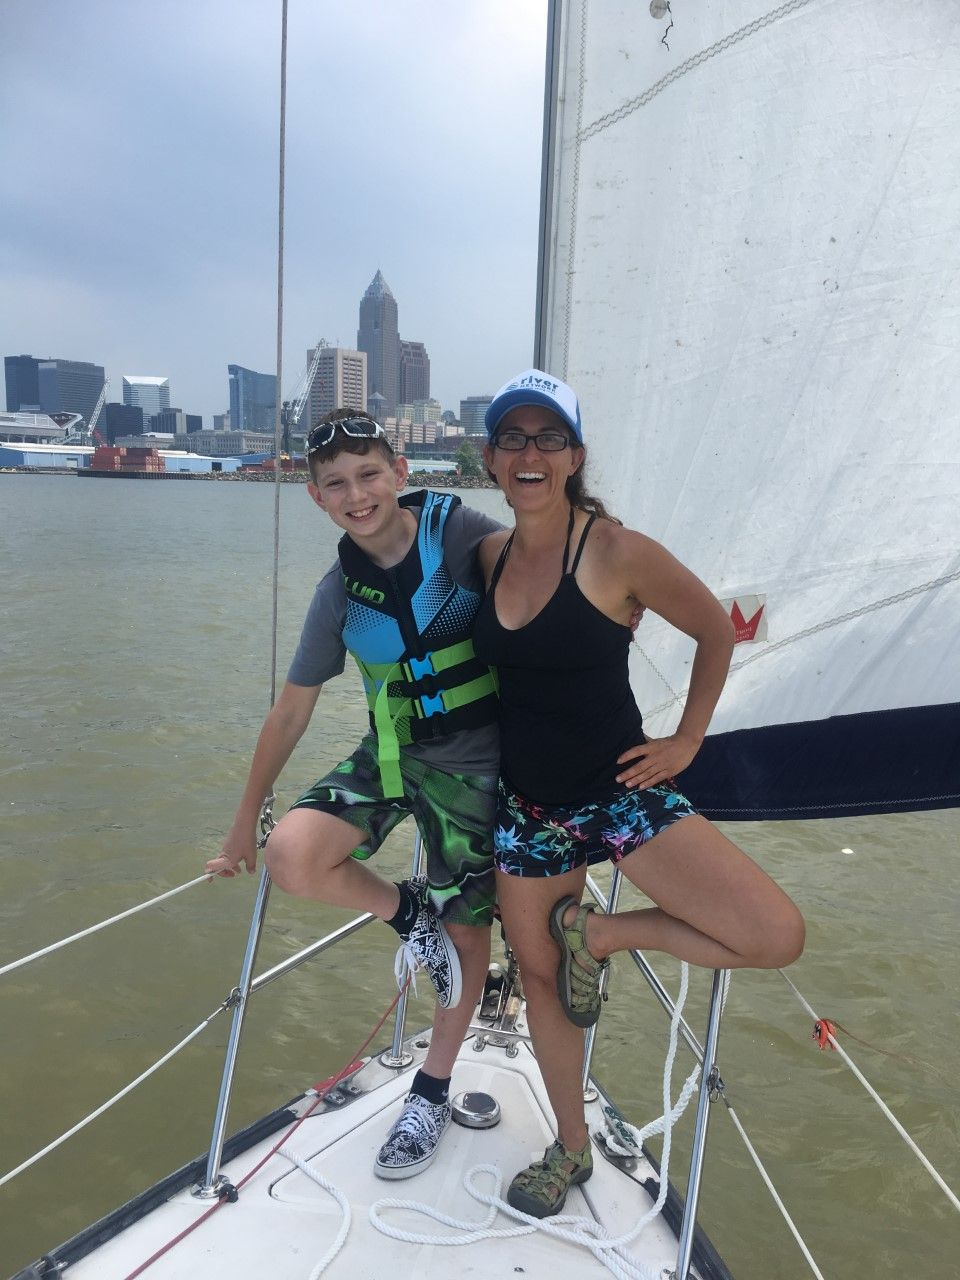 Lisa and nephew finding tree pose while sailing in Lake Erie, July 2019